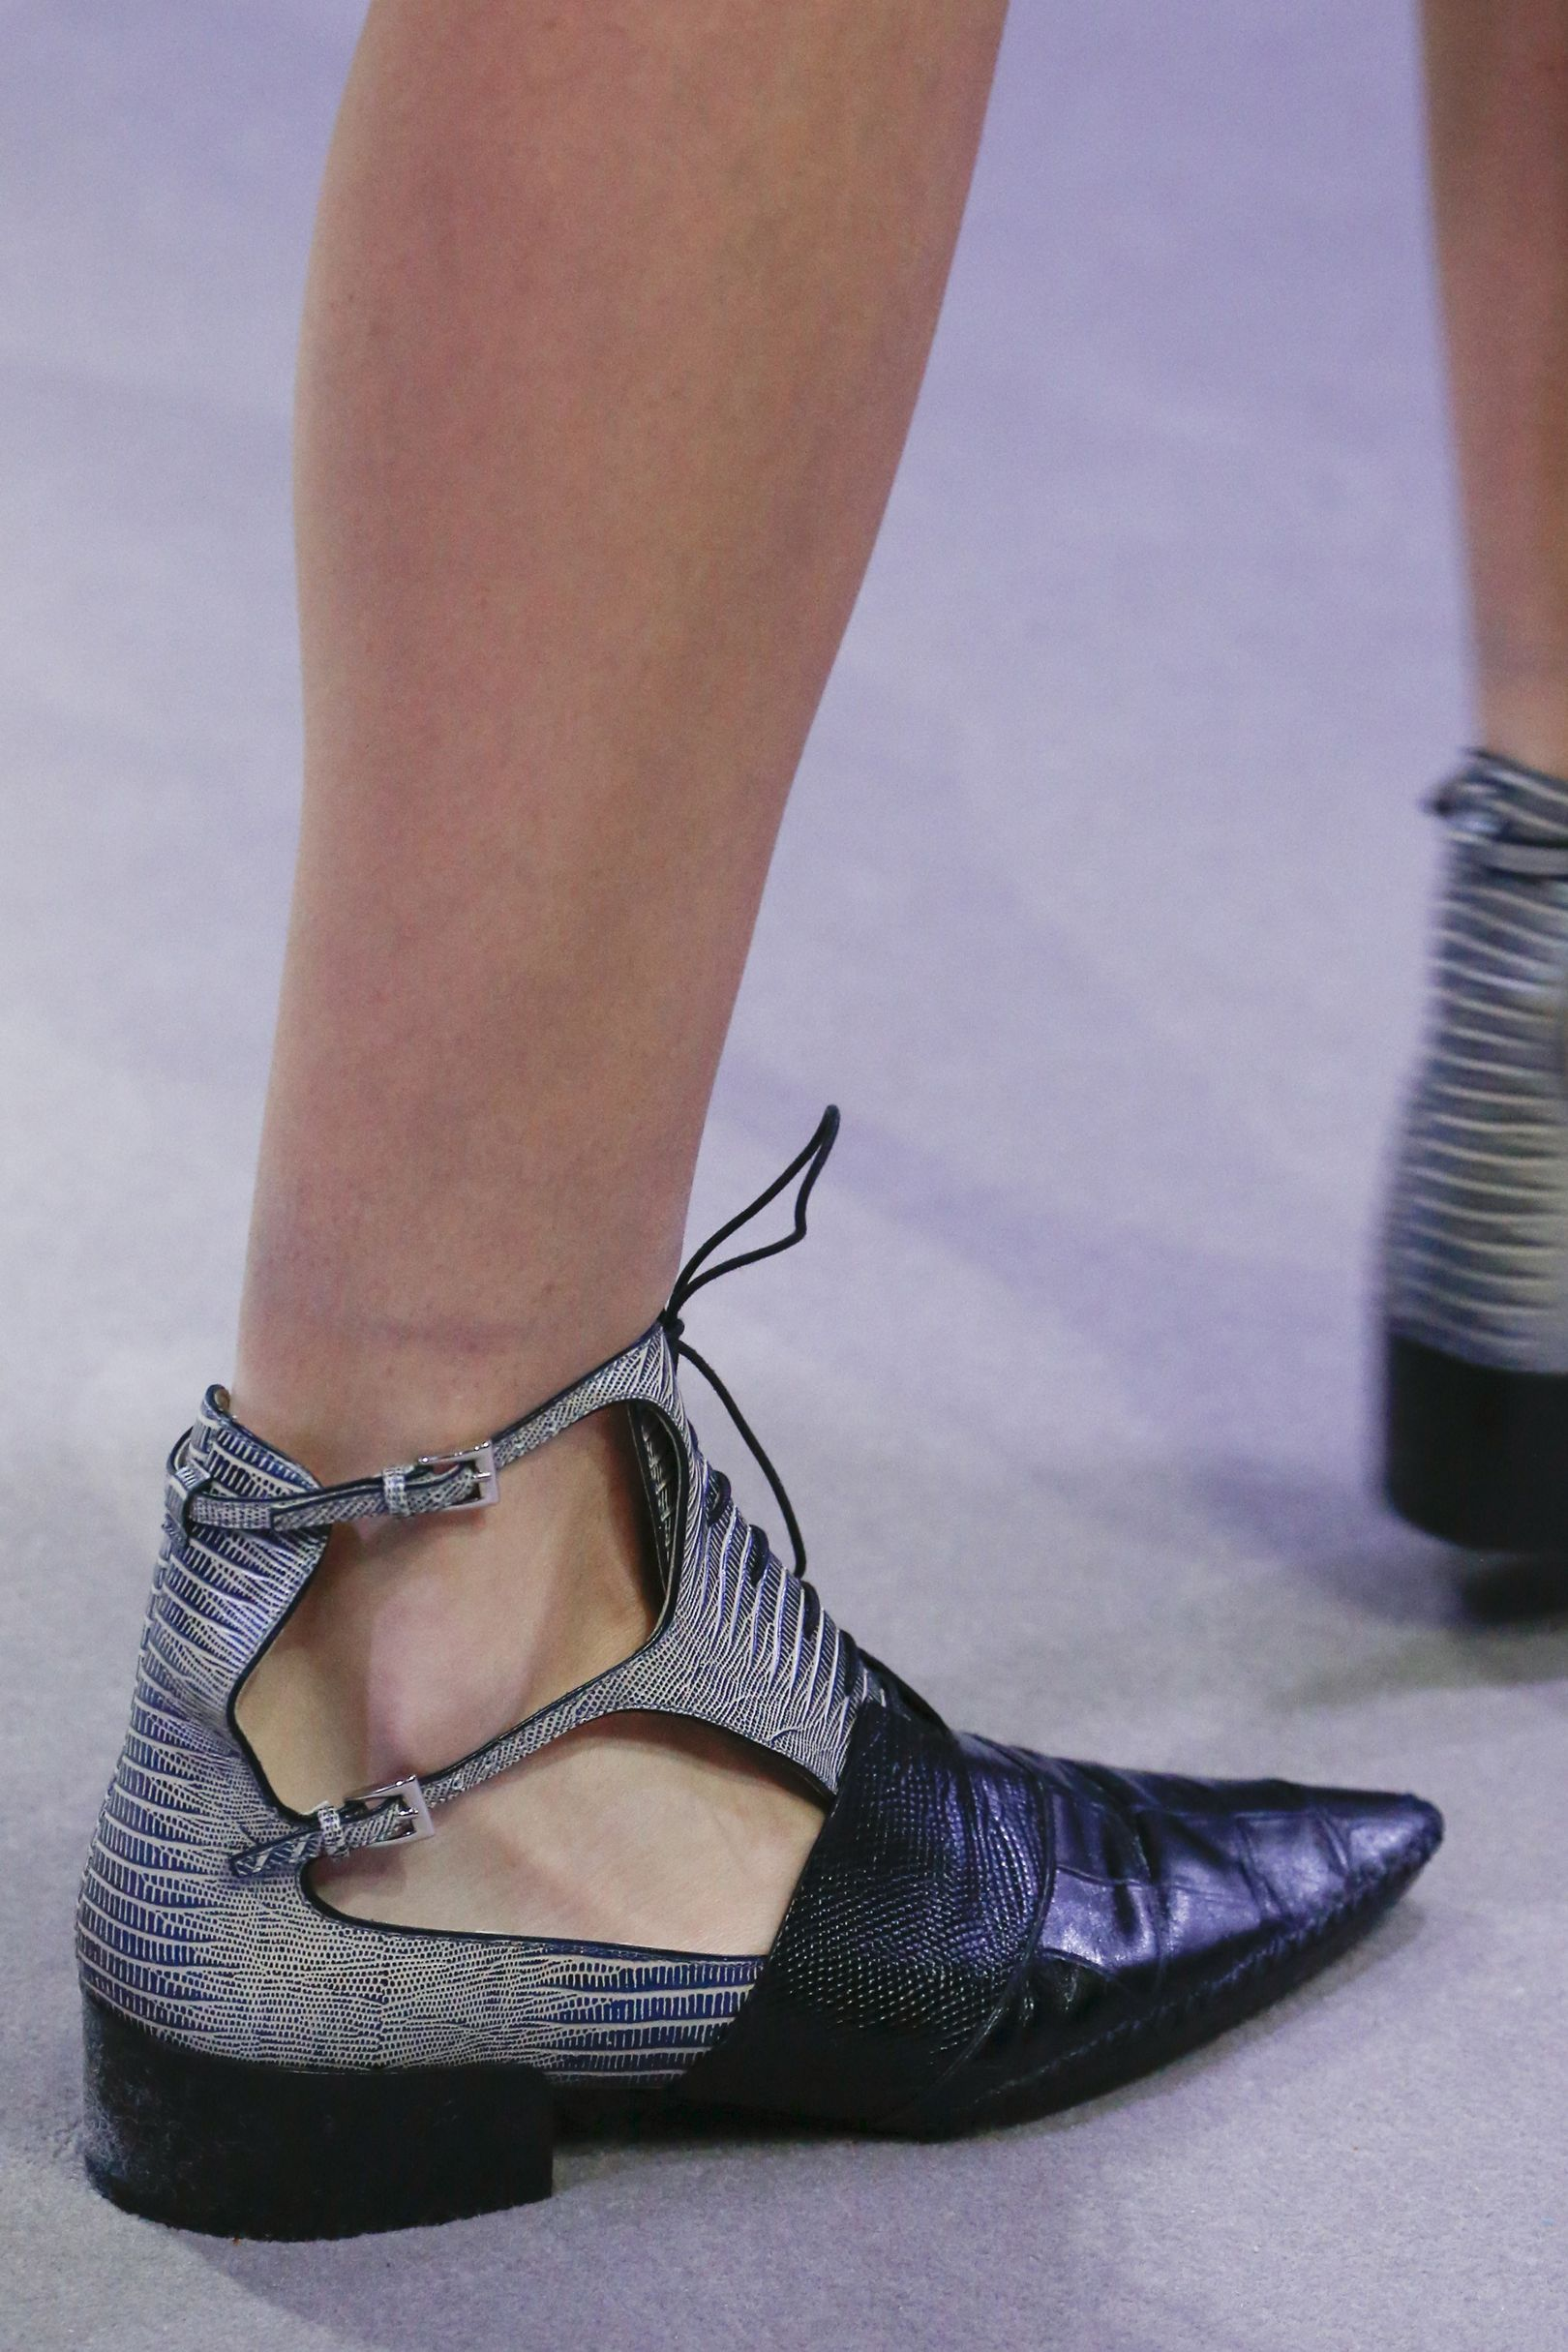 56a27267e6b The best designer shoes and shoe trends from the Autumn Winter 2016-17  fashion collections so far